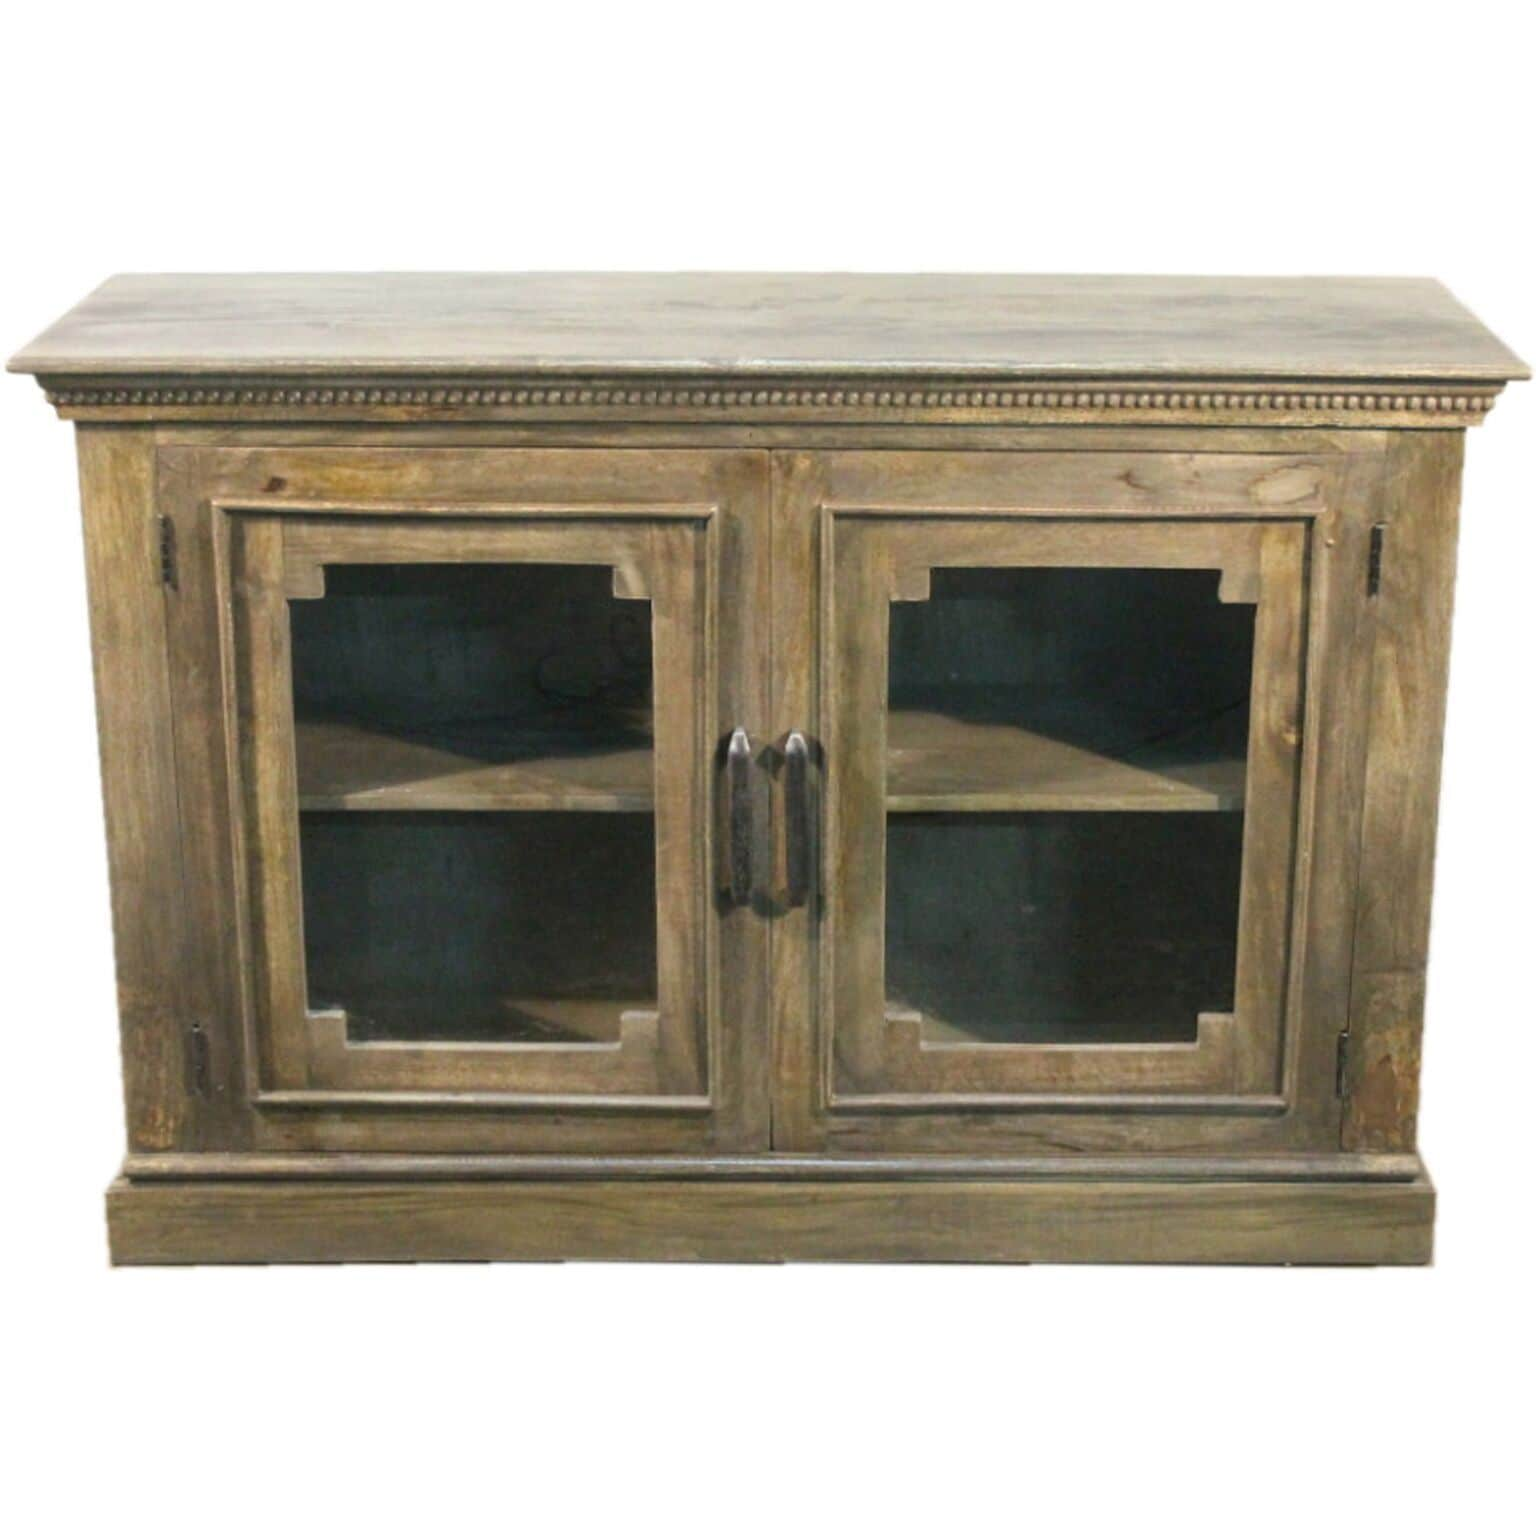 AA Warehousing Solid Wood Decorative Sideboard Cabinet with Wide Glass Paneled Doors (Side Board, Wood, Solid Wood, Cabinet)